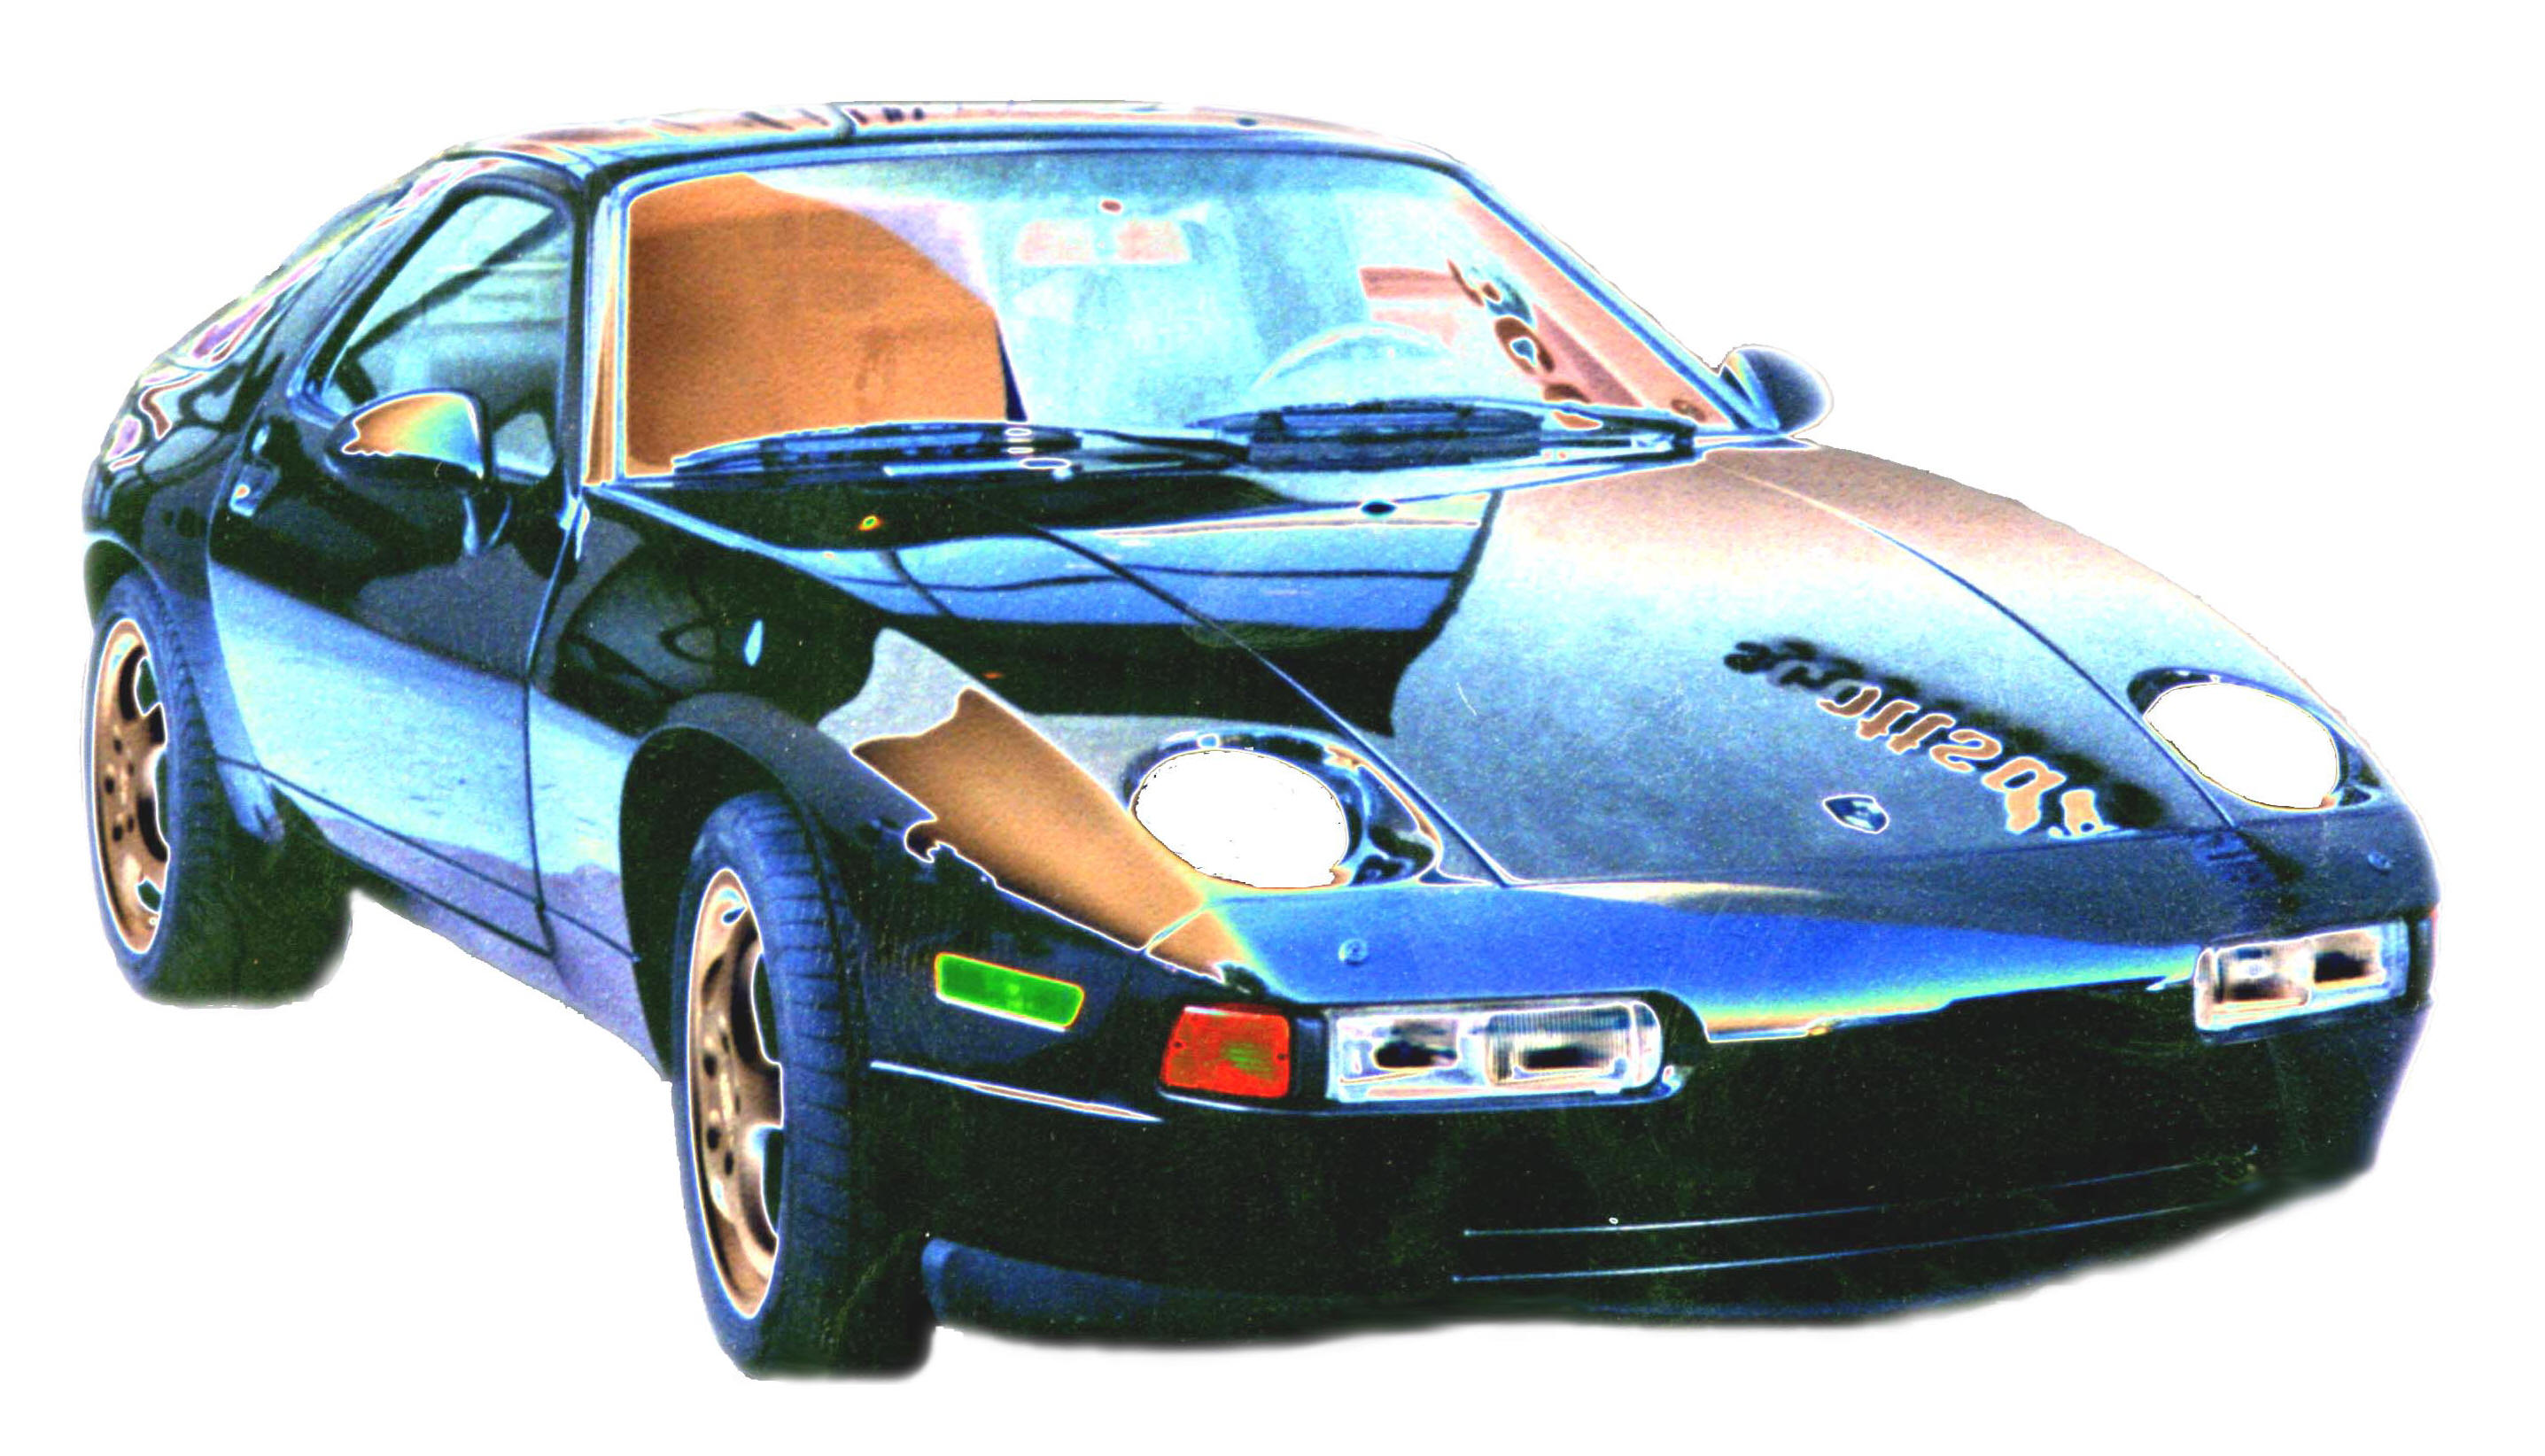 Alan 928 GTS 8h wiring diag primer 1980 porsche 928 wiring diagram at gsmportal.co